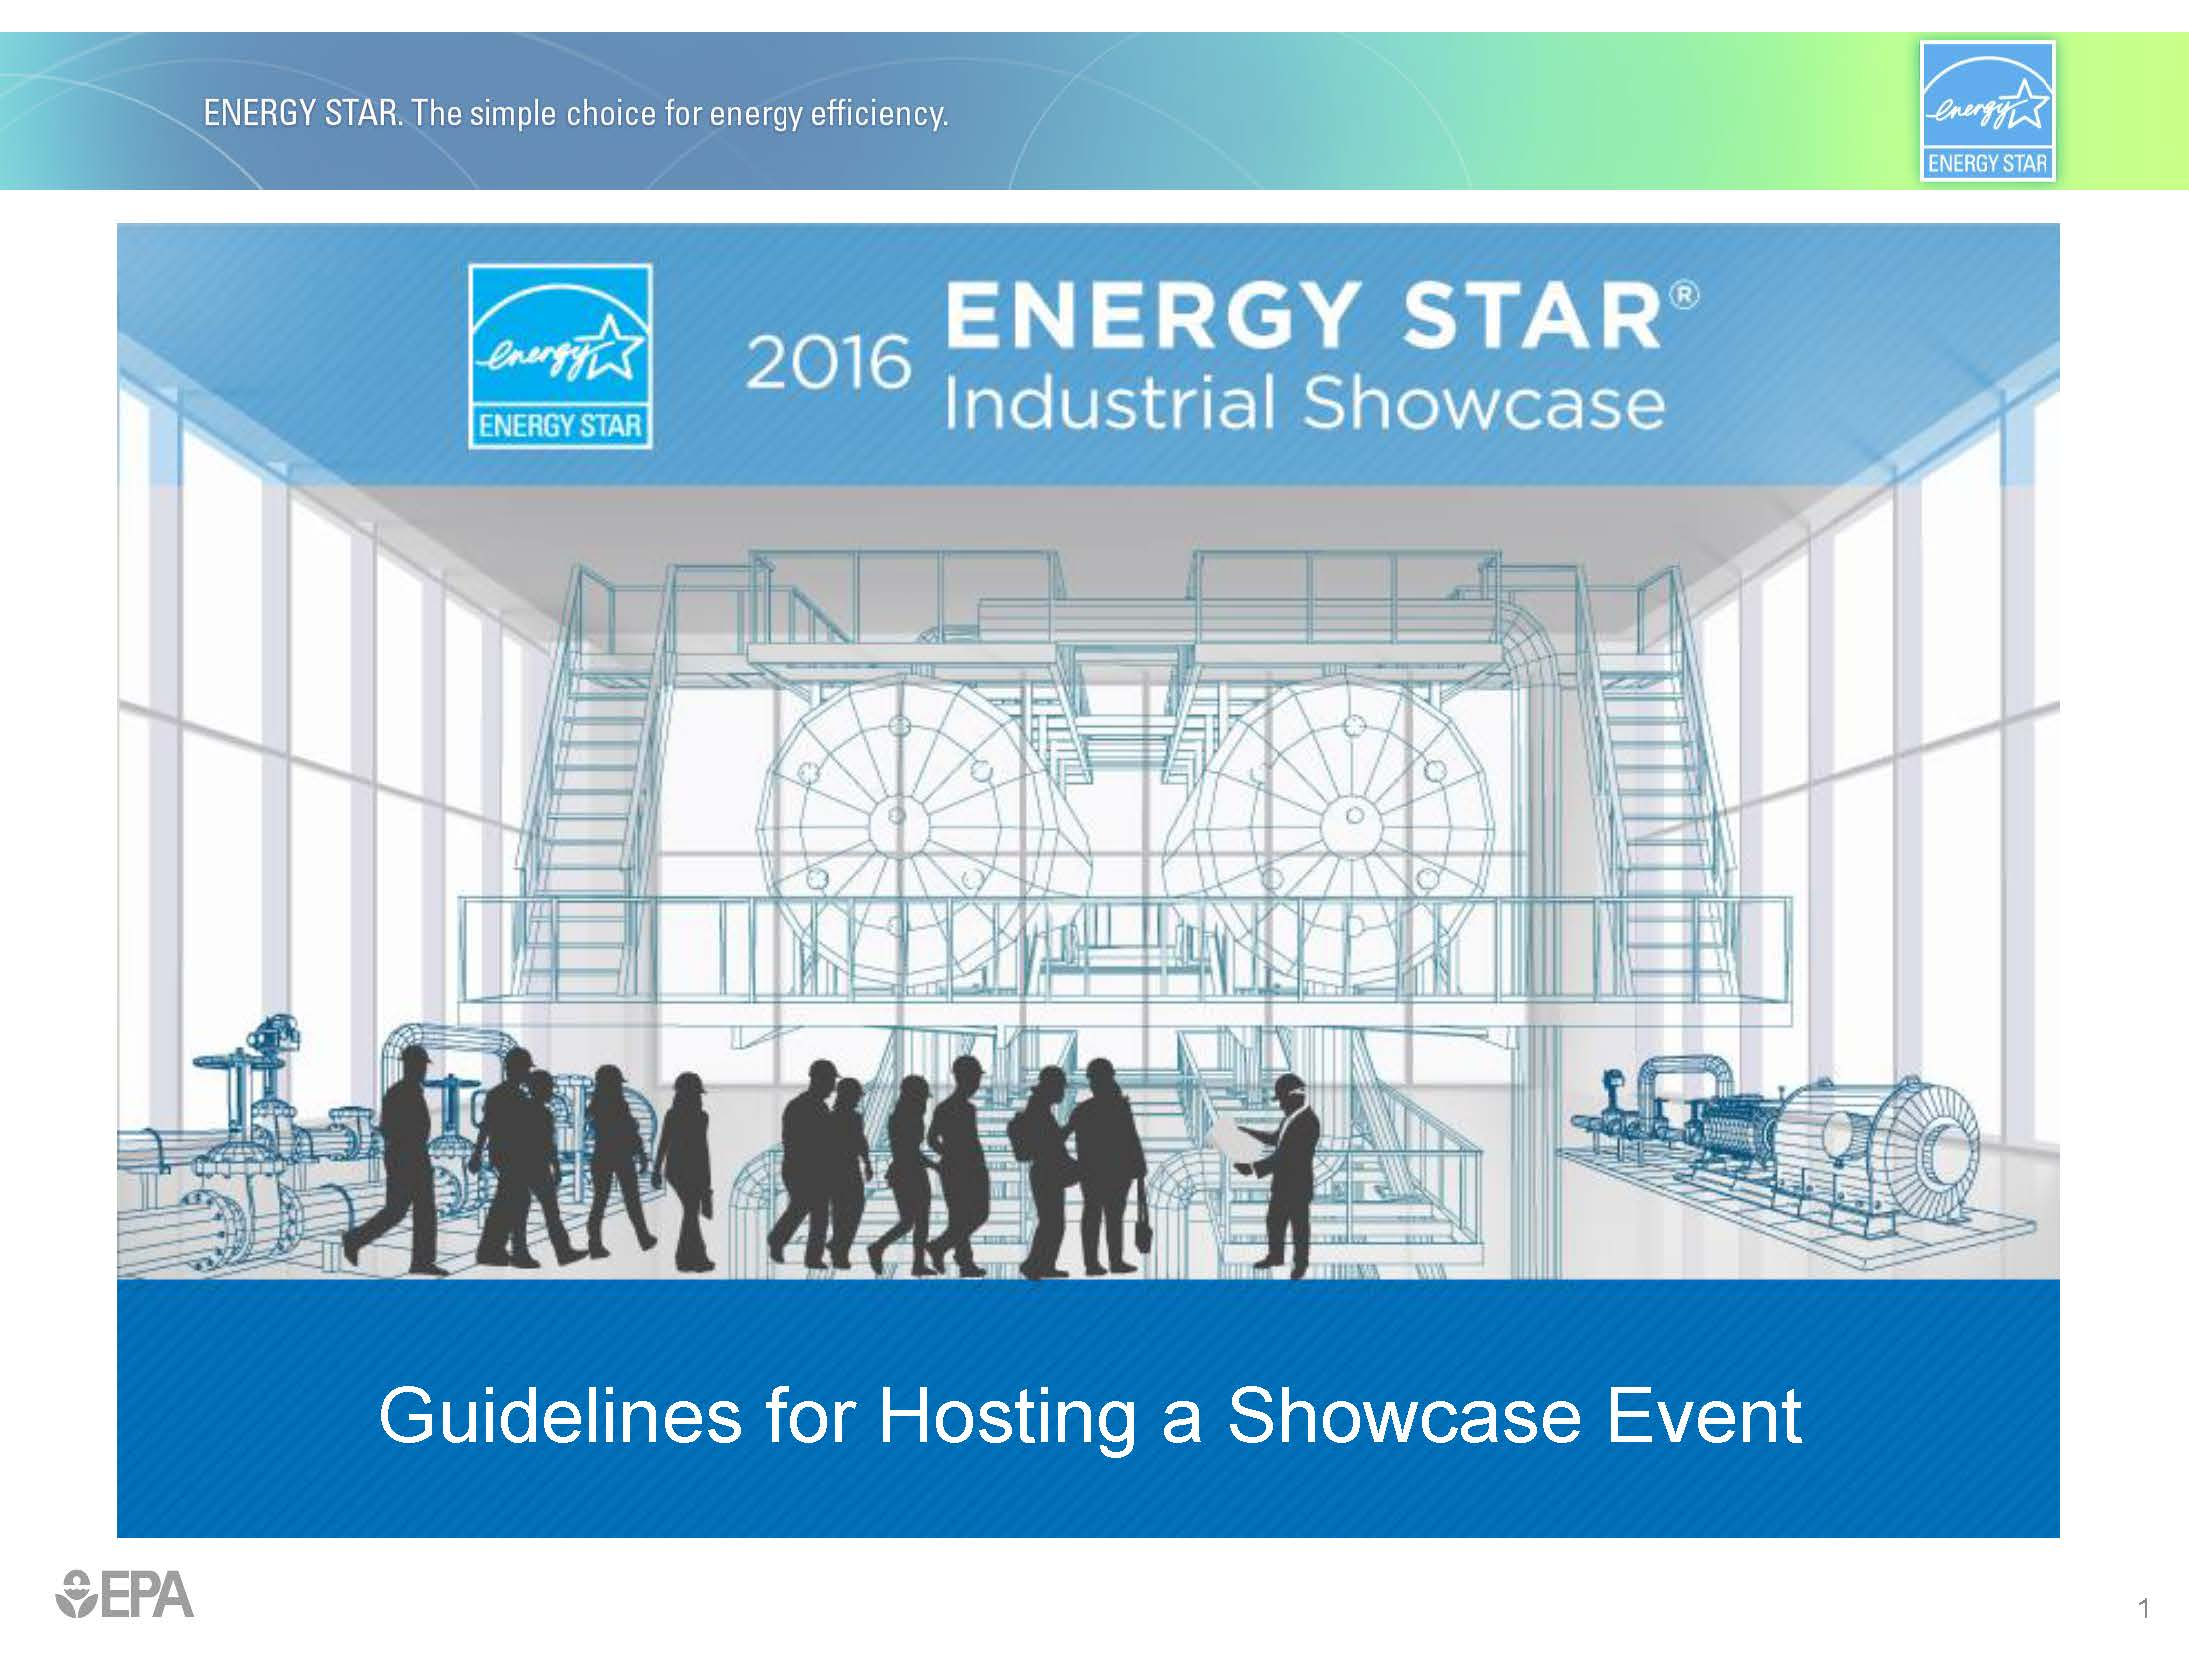 Industrial Showcase guidelines thumbnail